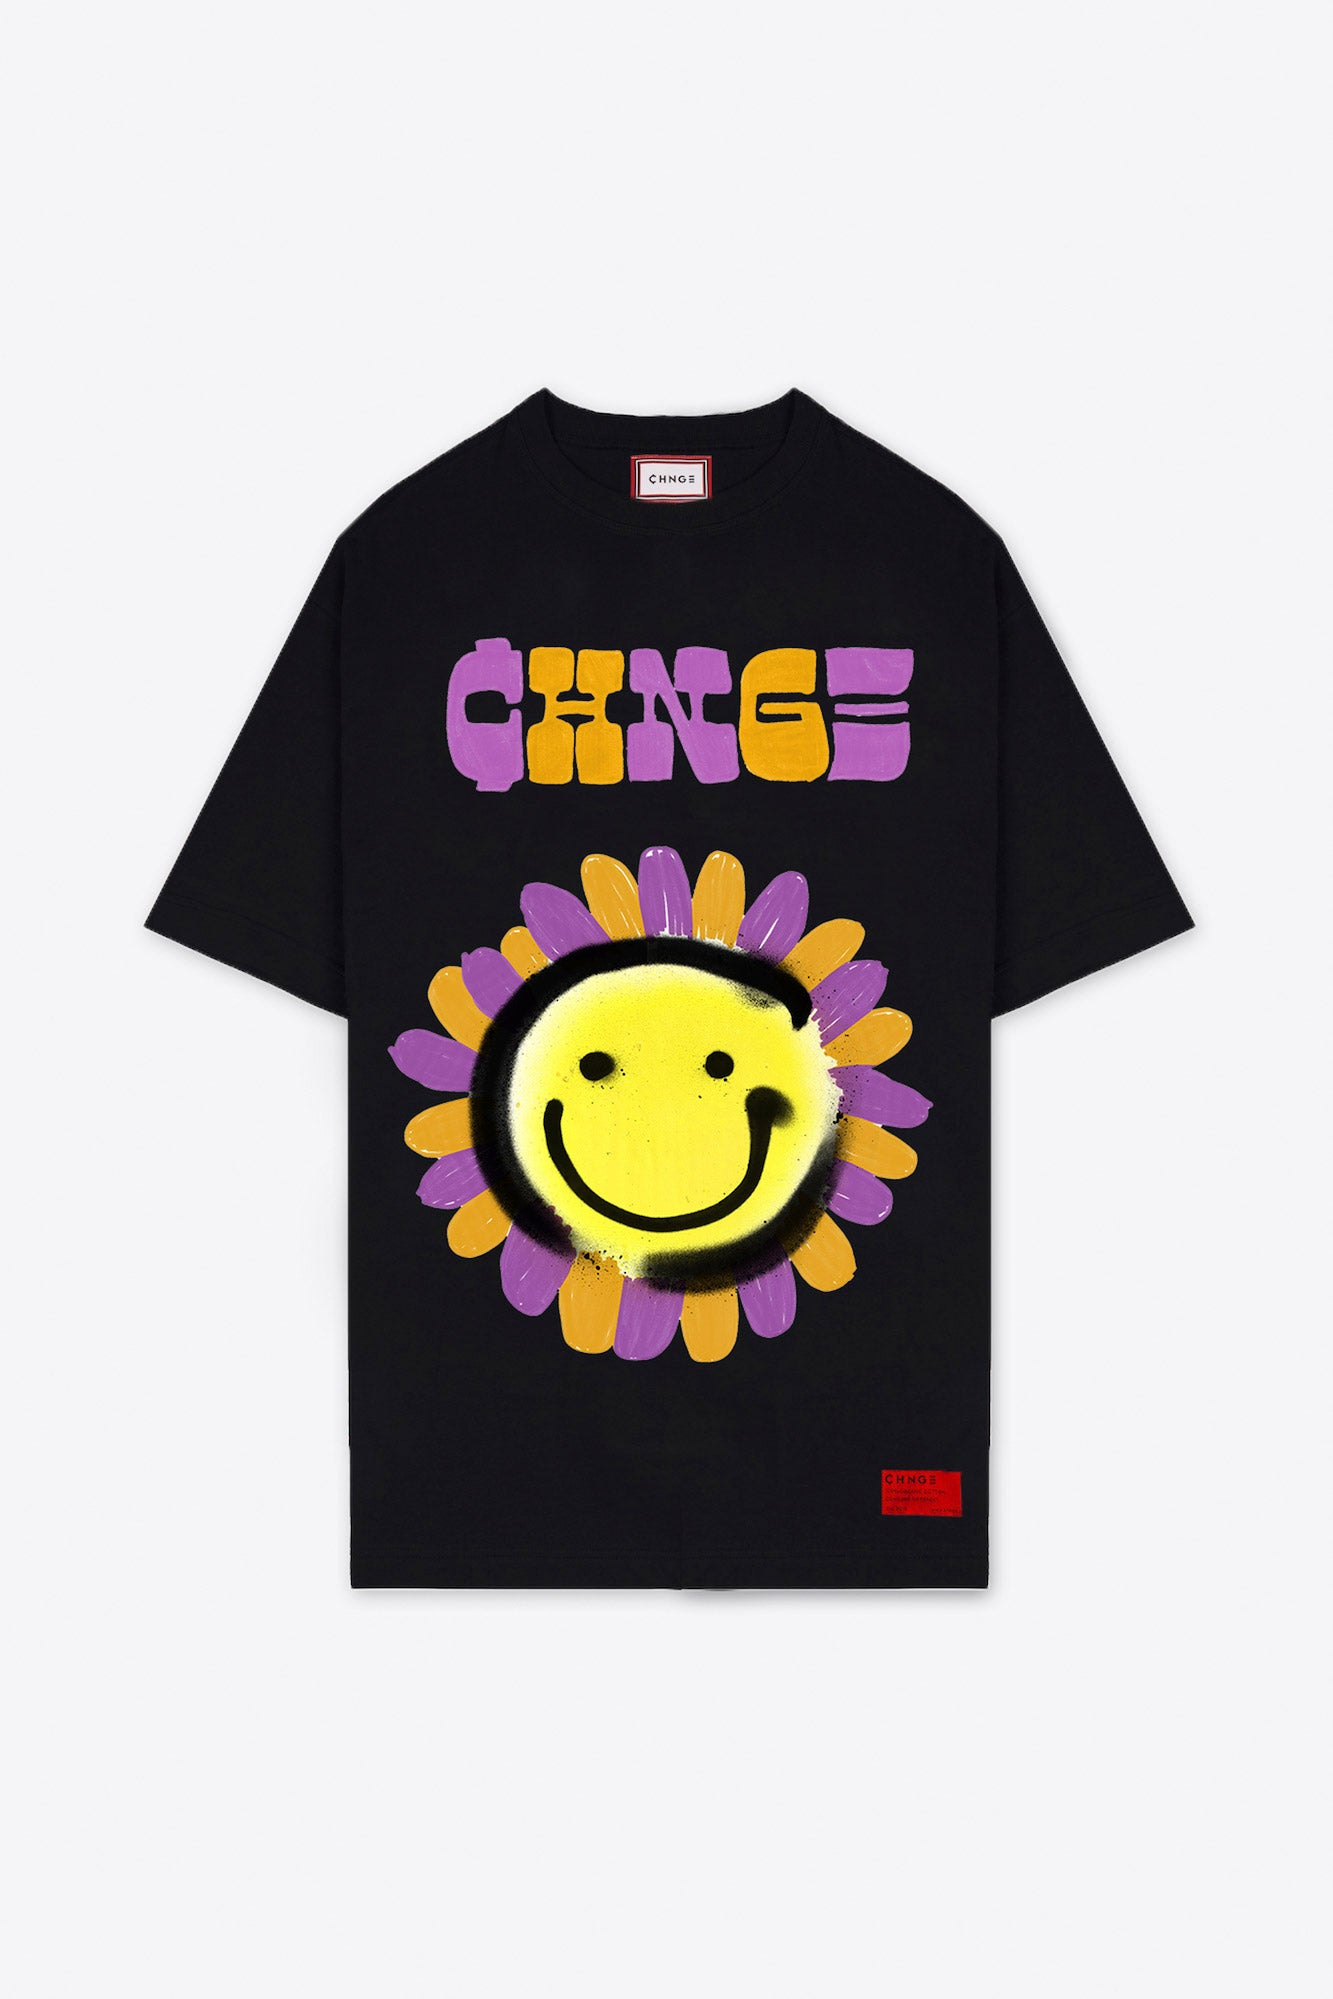 CHNGE Smiley Flower T-Shirt Dress